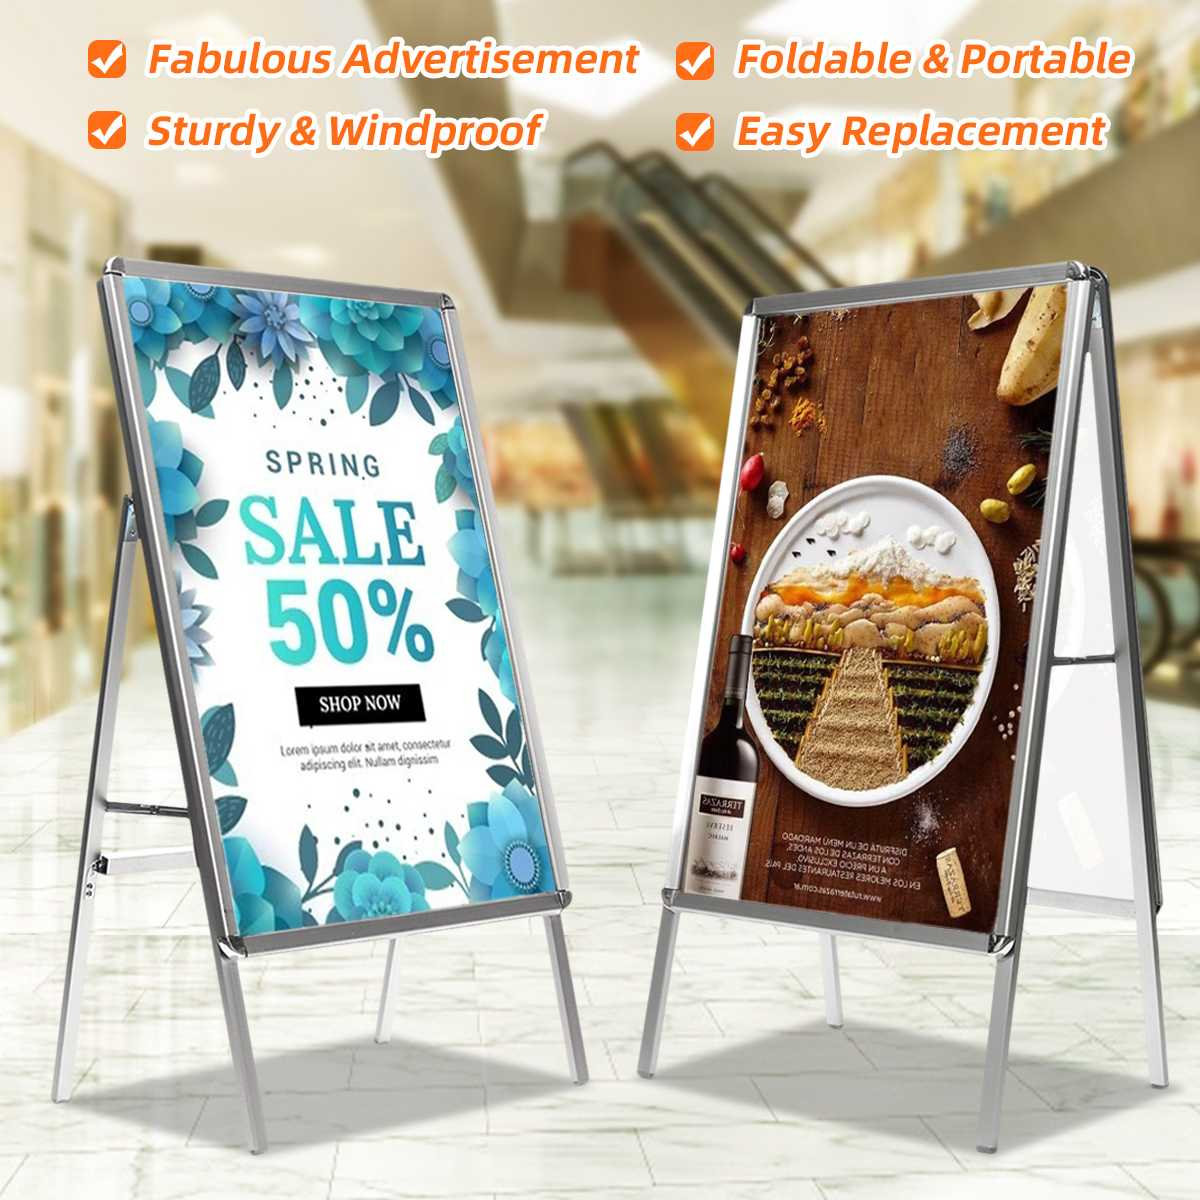 Folding Aluminum Alloy Banner Stand Assembly Poster Display Stand Frame Presentation Advertisement Display Shelf Holder